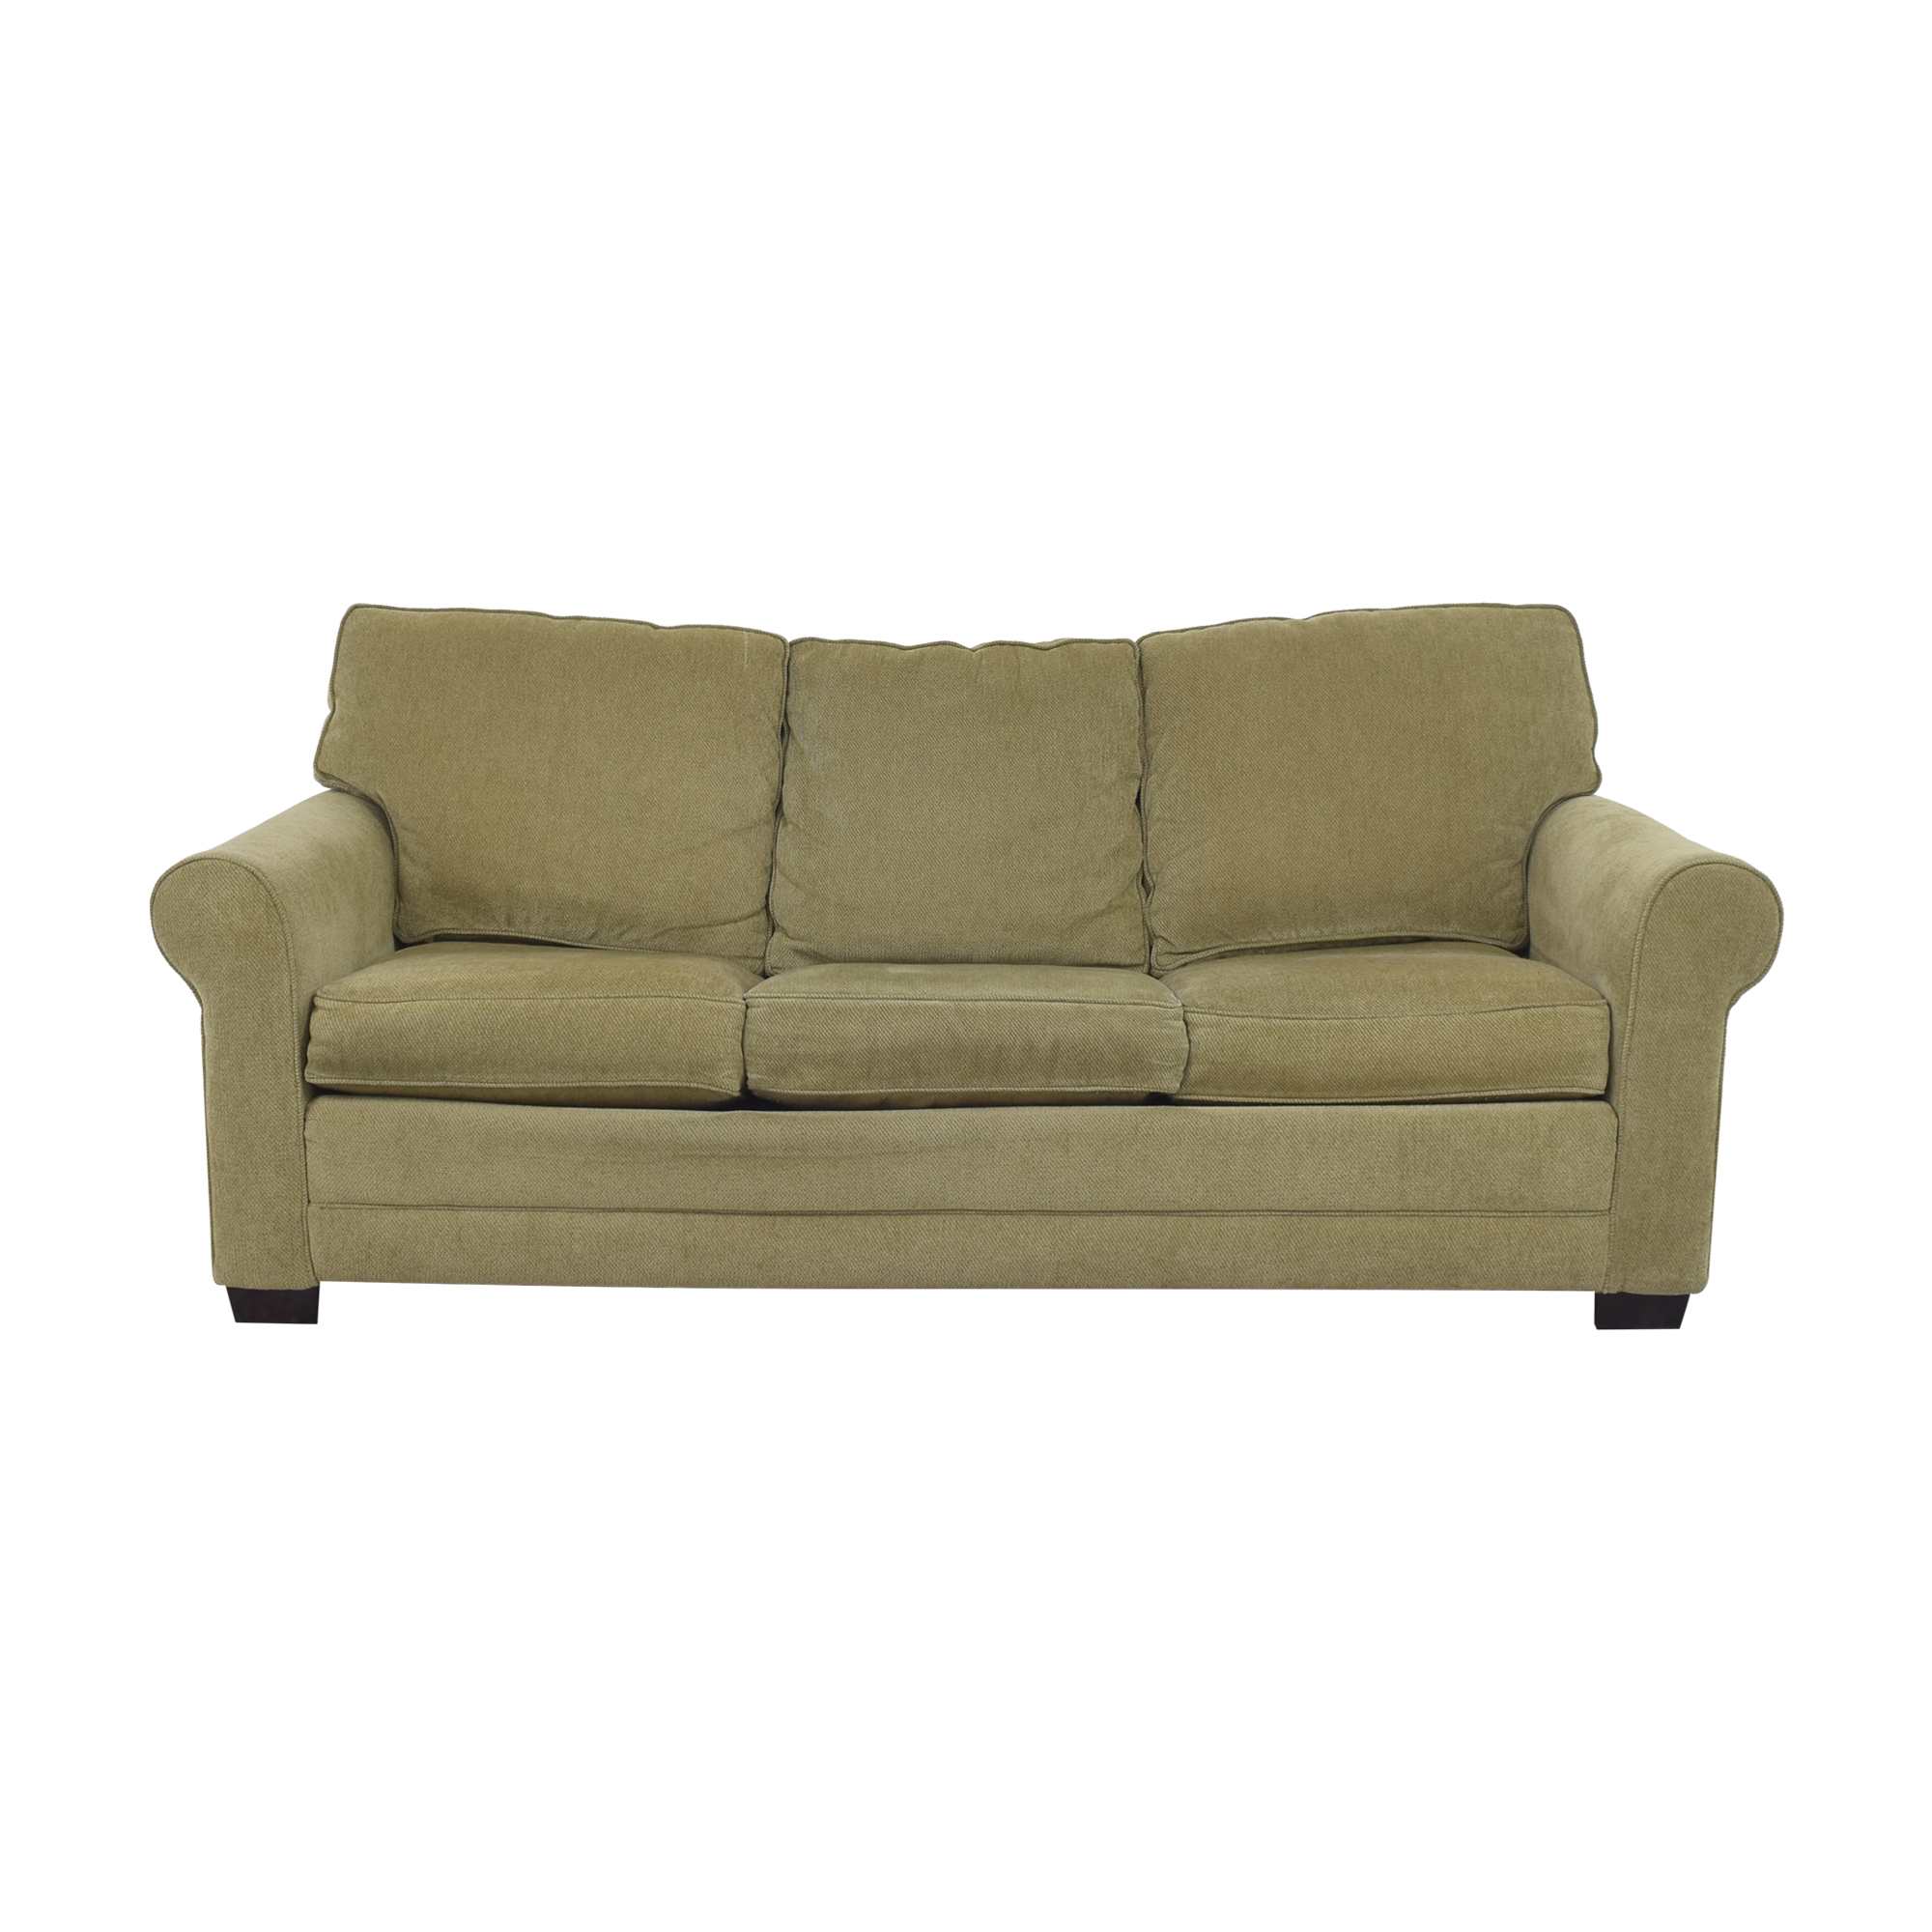 Roll Arm Sleeper Sofa green